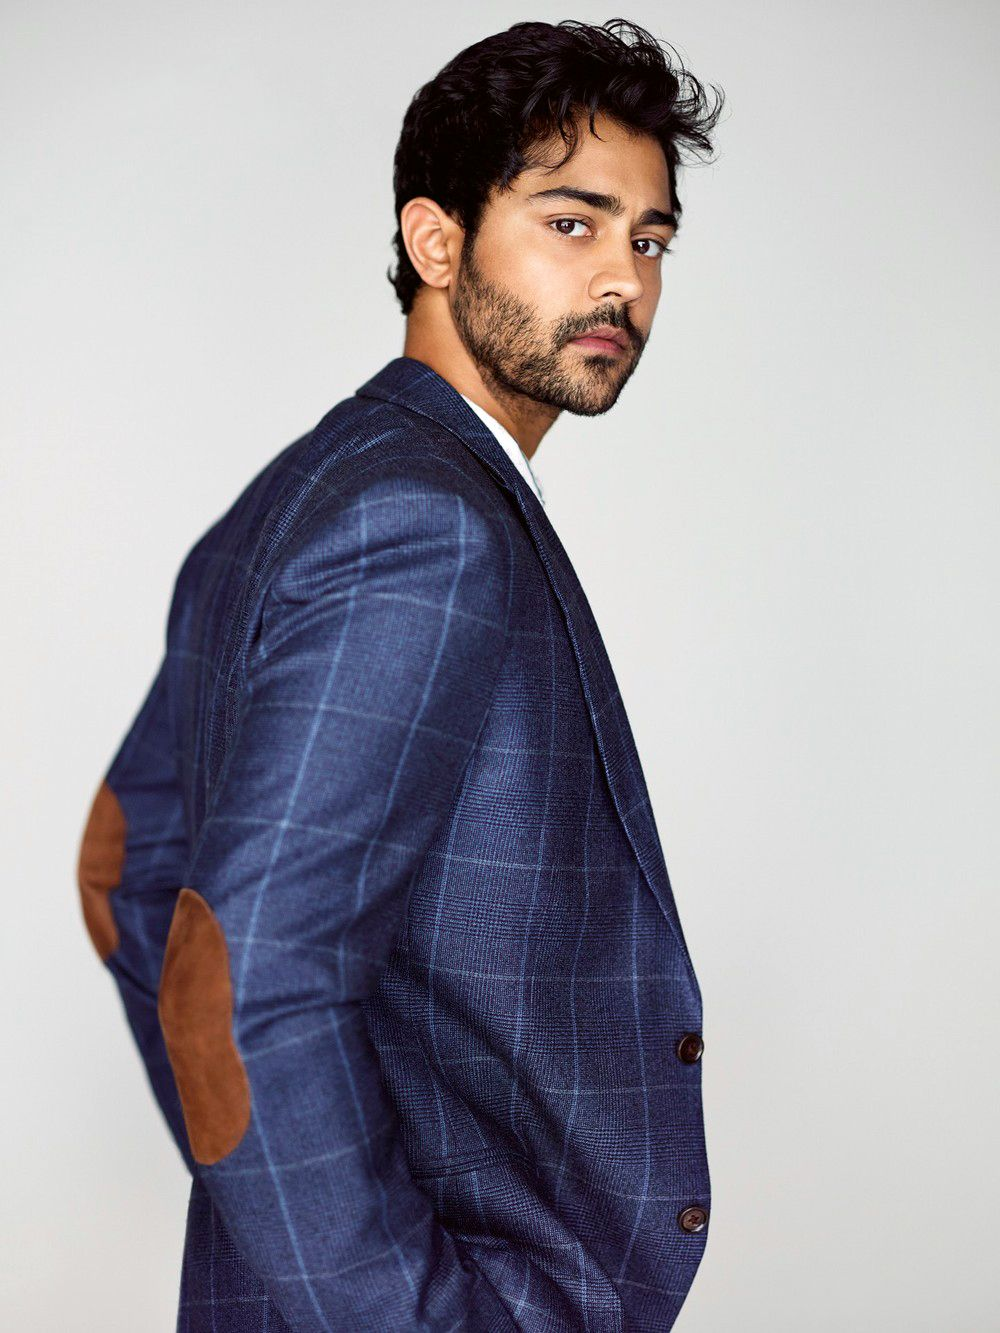 manish dayal marriedmanish dayal wdw, manish dayal marvel, manish dayal wife, manish dayal instagram, manish dayal shield, manish dayal indian, manish dayal, manish dayal married, маниш дайал, manish dayal movies, маниш дайал личная жизнь, manish dayal interview, manish dayal wiki, маниш дайал и его девушка, manish dayal facebook, маниш дайал национальность, маниш дайал инстаграм, маниш дайал фото, manish dayal and charlotte le bon, manish dayal and girlfriend